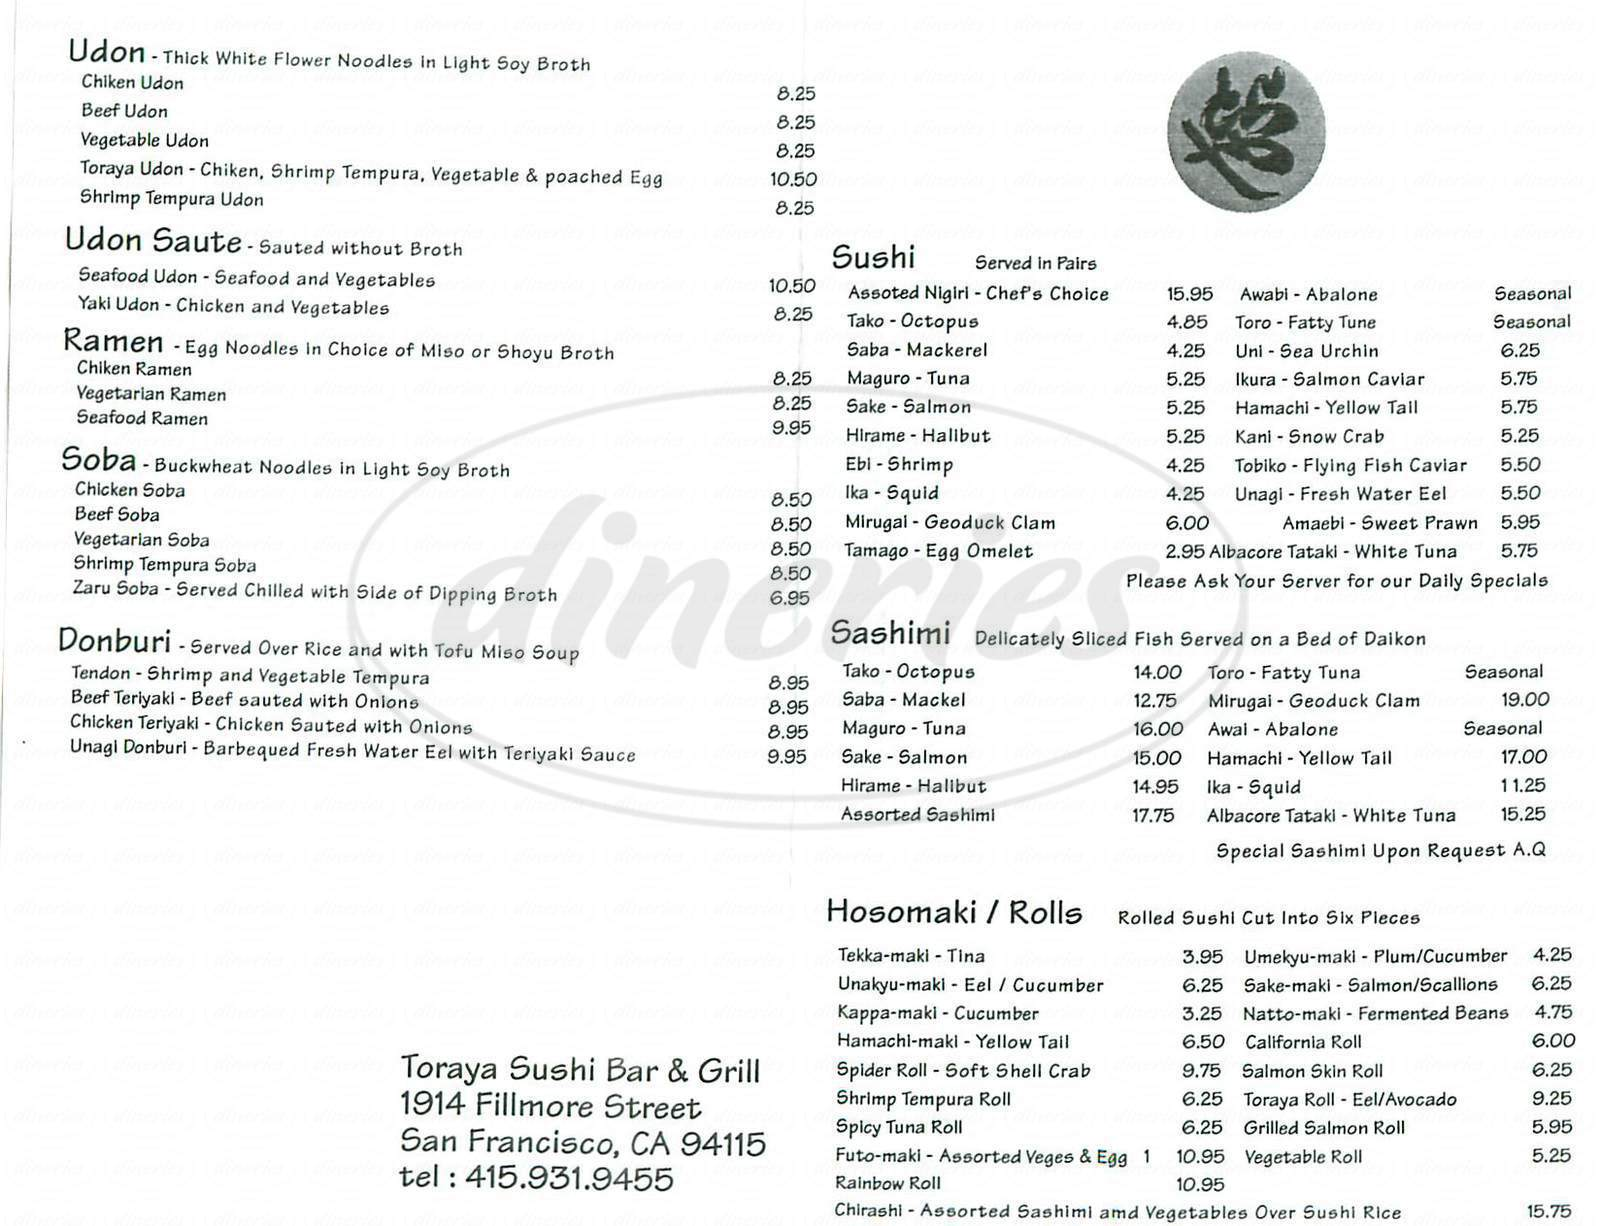 menu for Toraya Sushi Bar & Grill